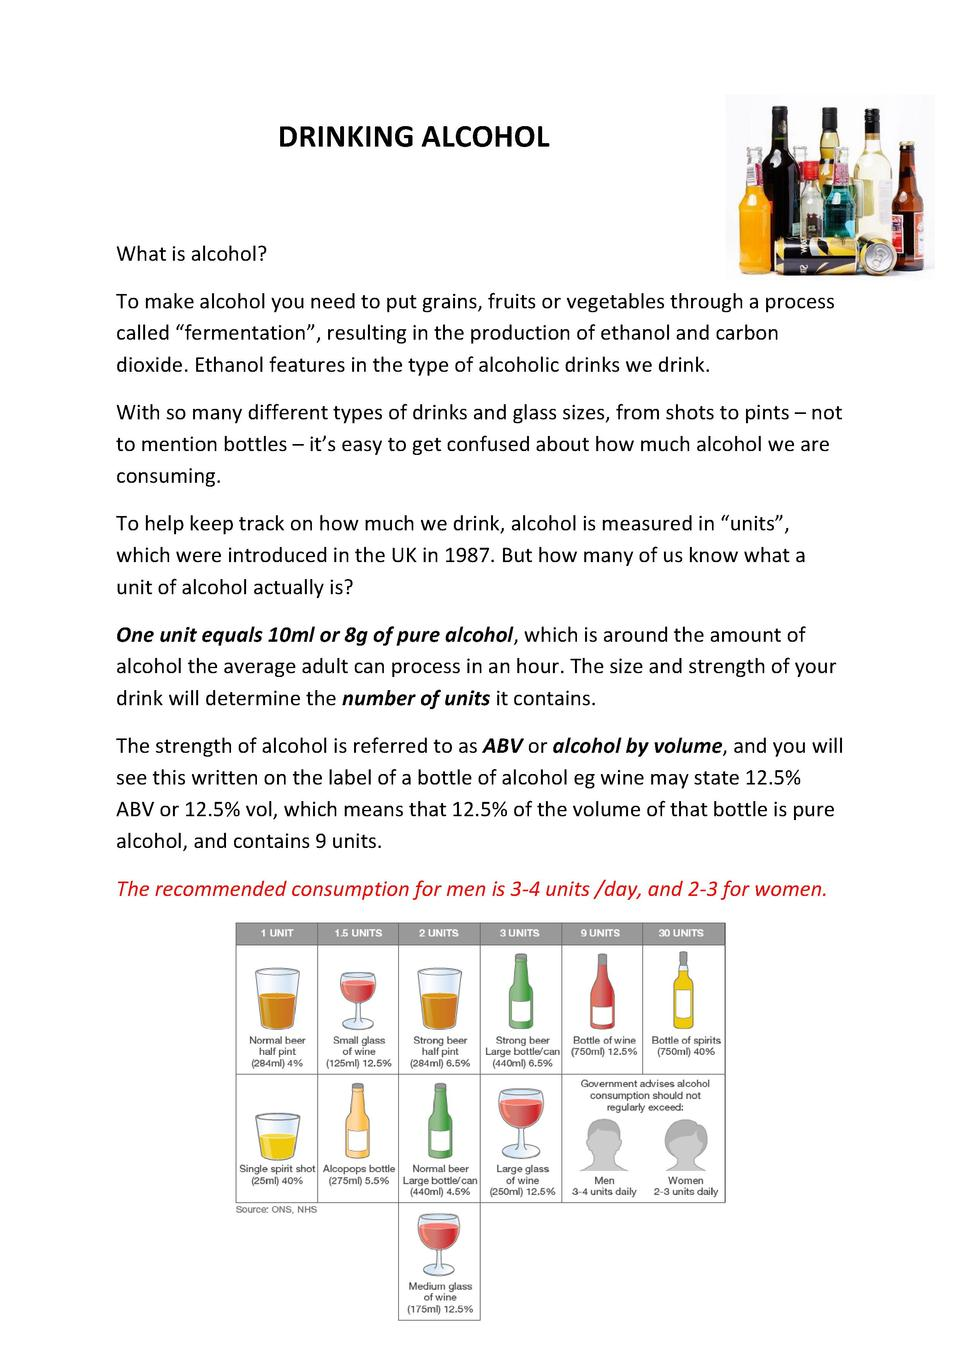 DRINKING ALCOHOL  What is alcohol  To make alcohol you need to put grains, fruits or vegetables through a process called  ...